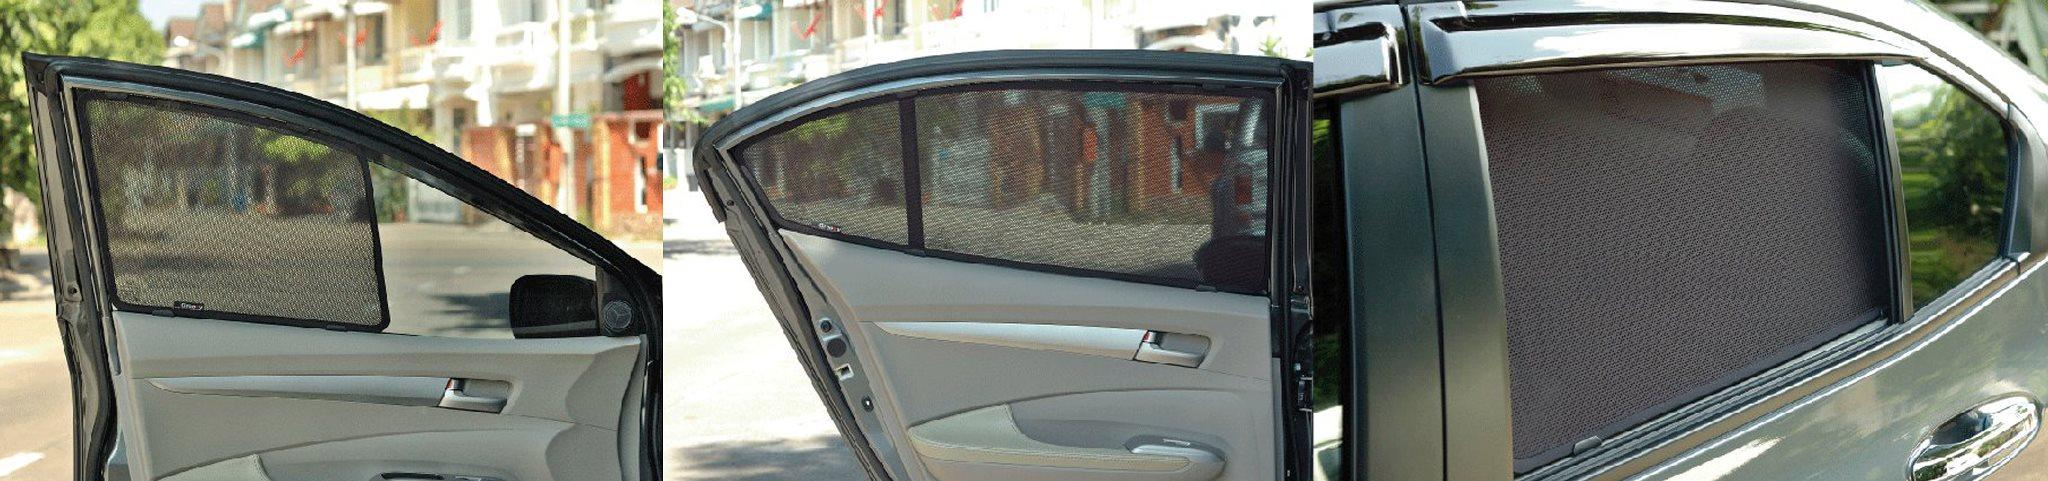 Custom Fit OEM Sunshades/ Sun shades for Proton Iswara/Saga (4pcs)